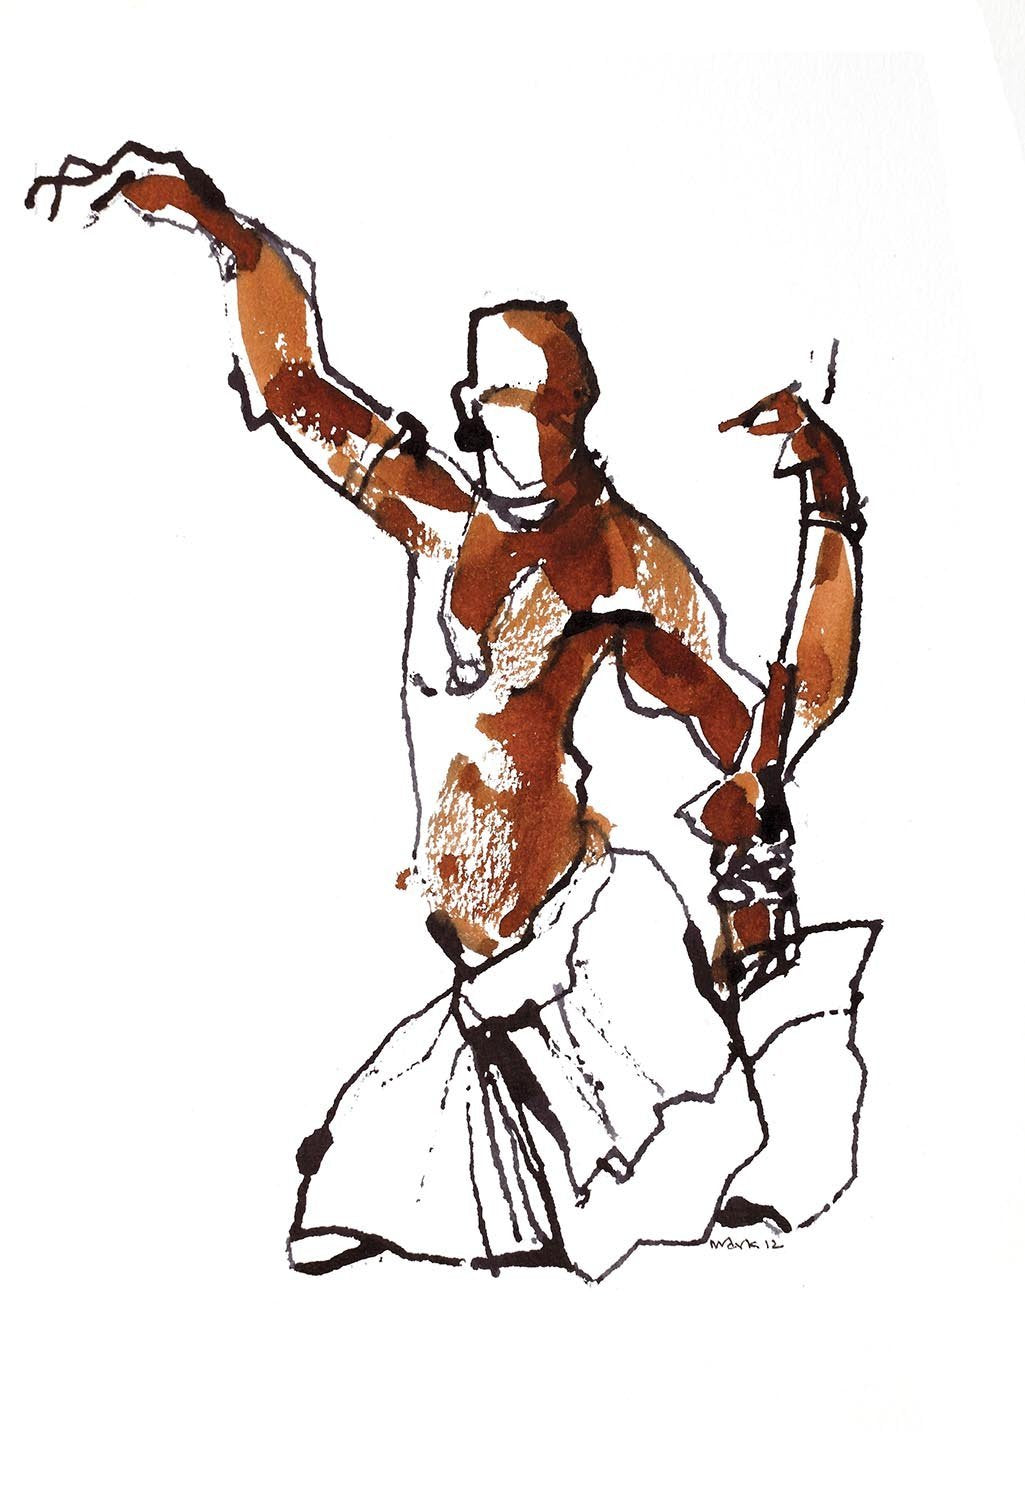 Performer 219|S. Mark Rathinaraj- Pen and Ink on Paper, , 8.5 x 5.5 inches